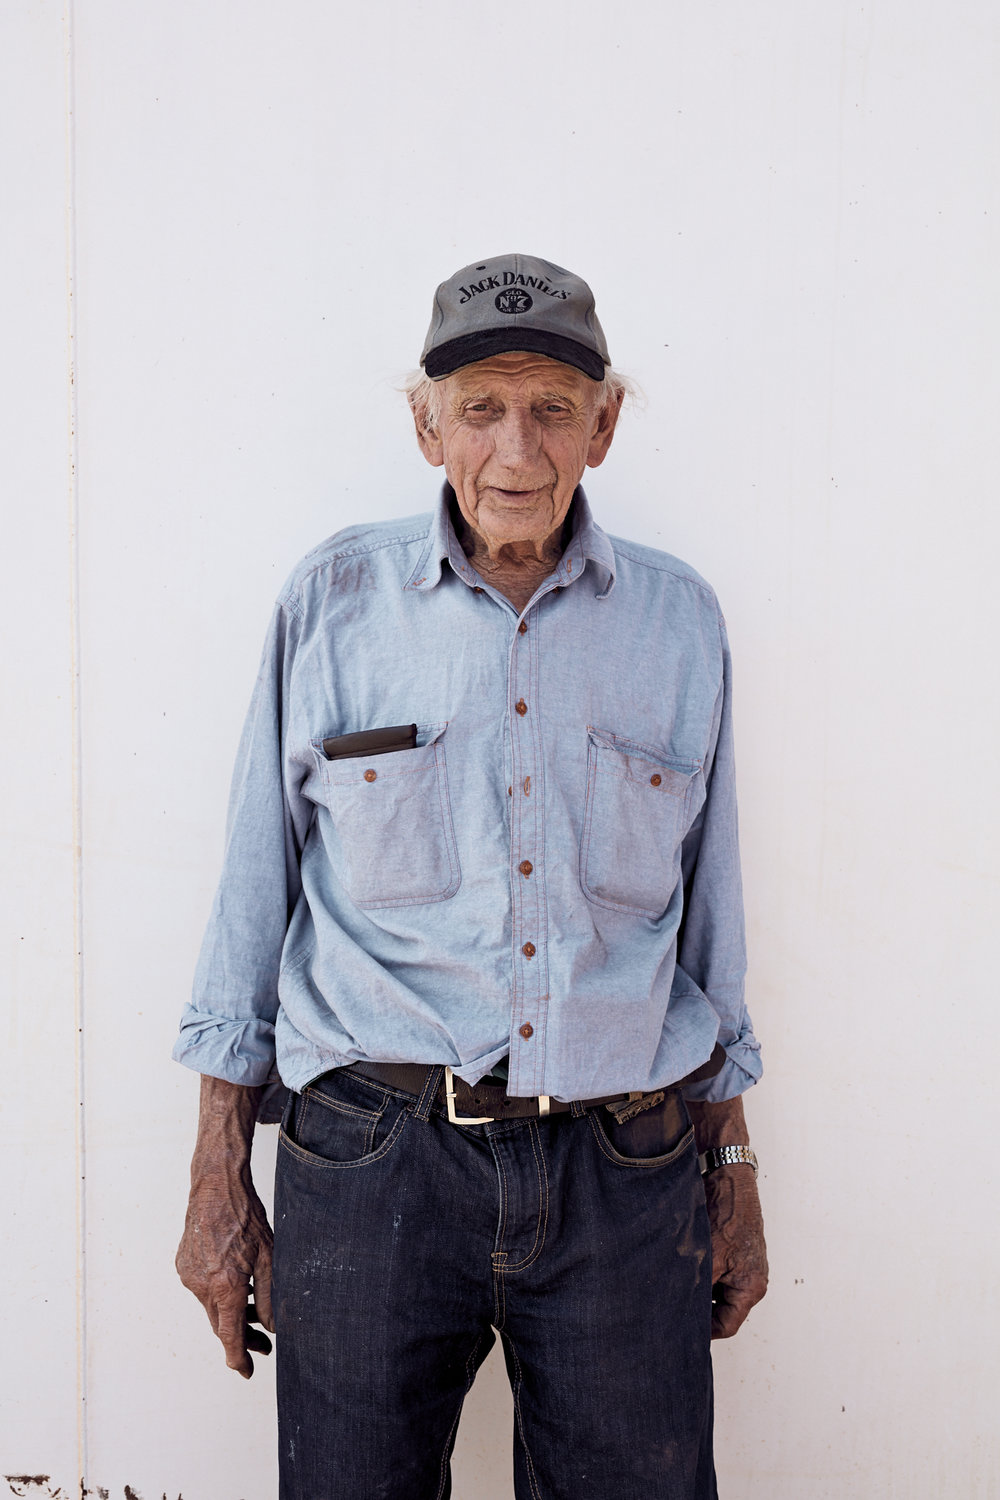 Jack O'Connor - Retired gold miner in Wiluna